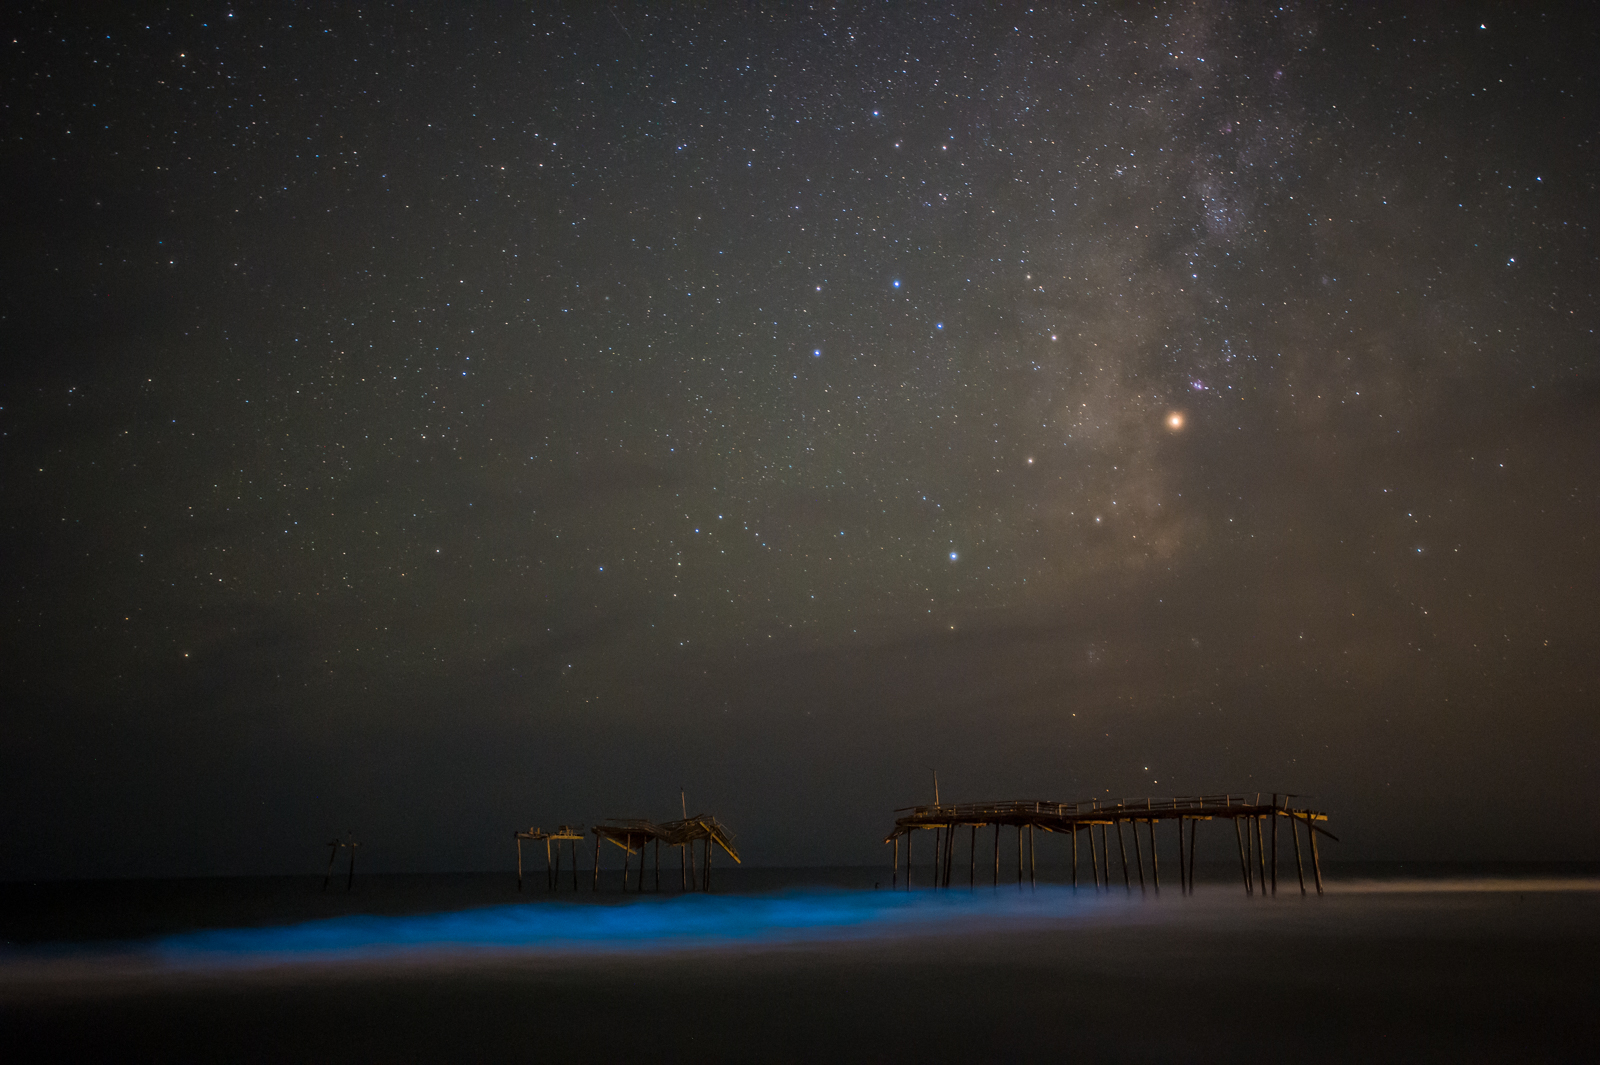 Photography Workshops - Hatteras Photography Workshops give students the chance to fine tune their photography skills, while enjoying the wonder of Cape Hatteras National Seashore.